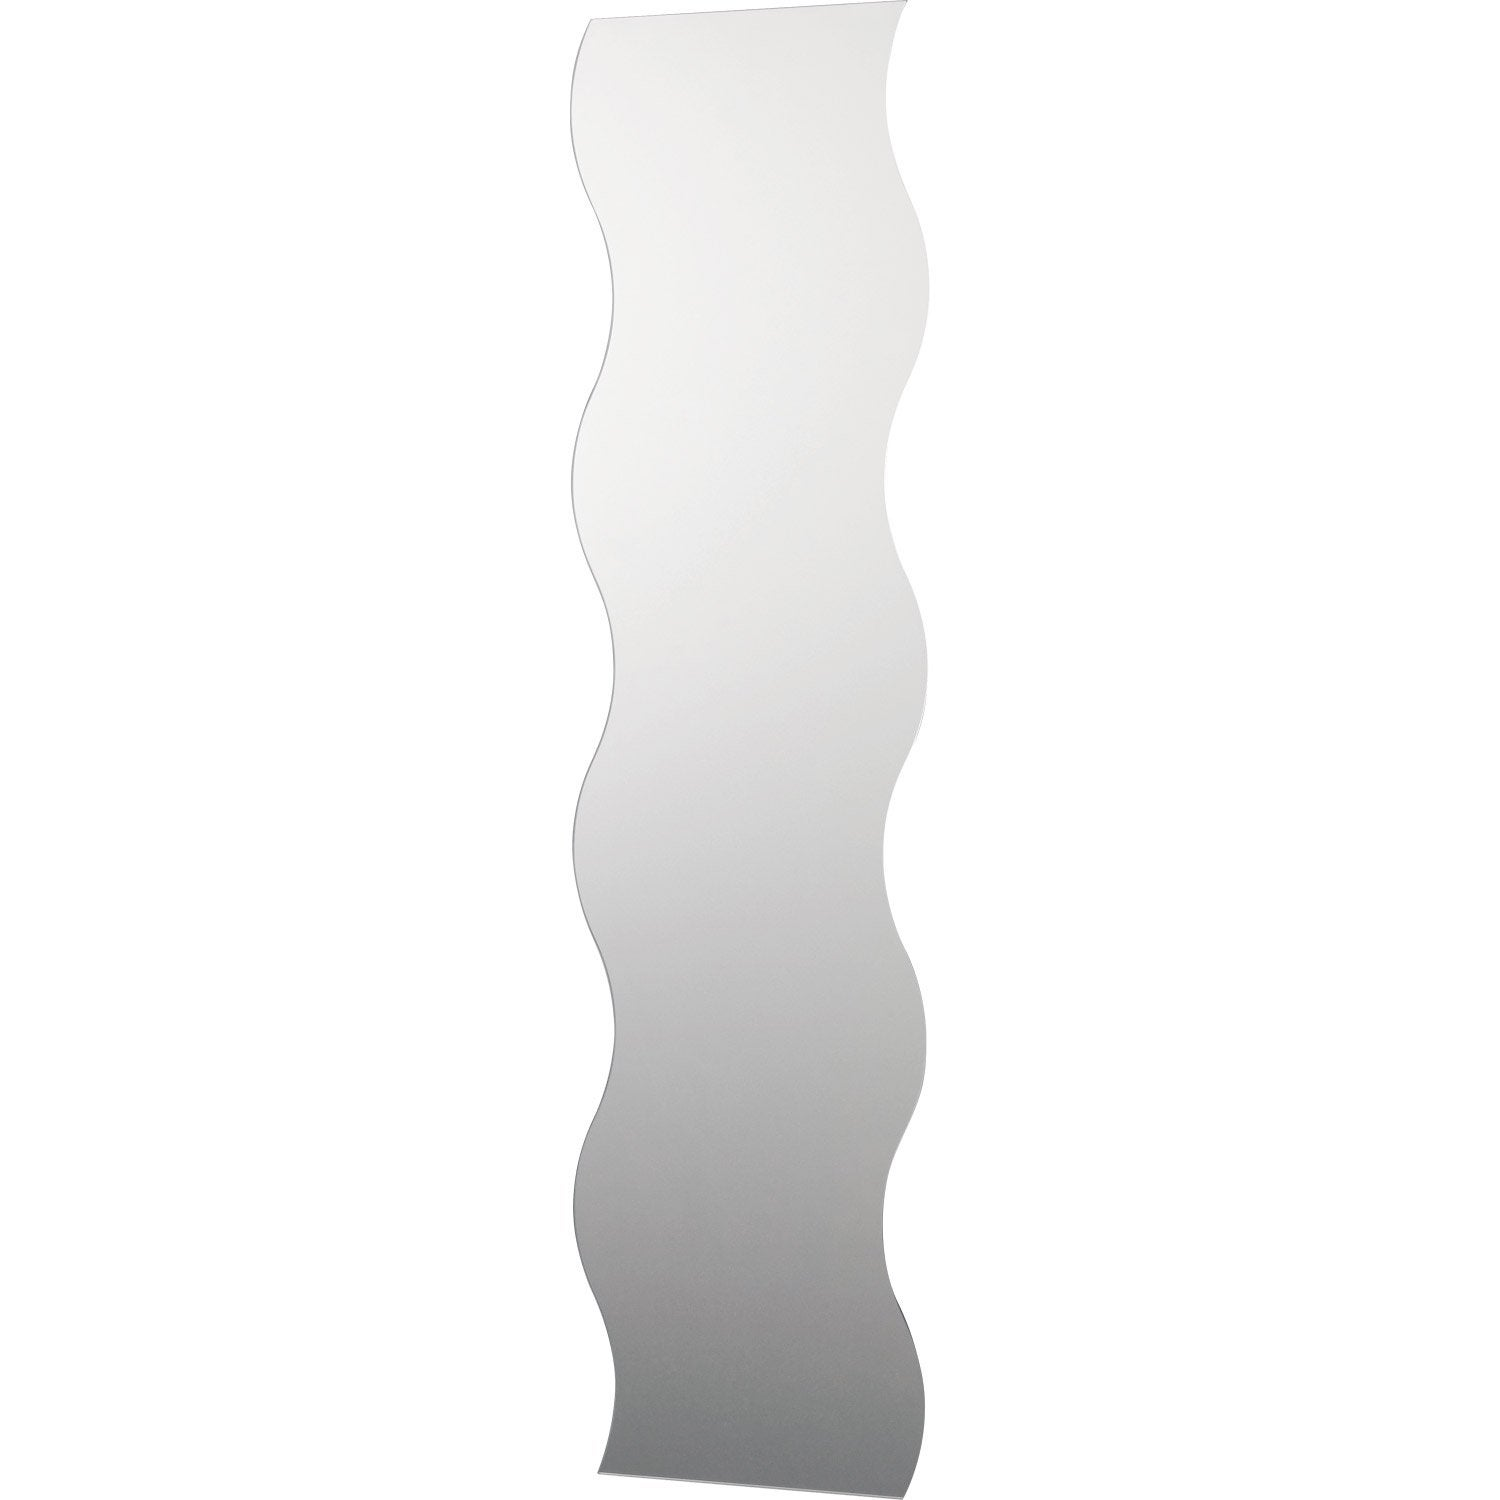 miroir vague 120 x 30 cm leroy merlin